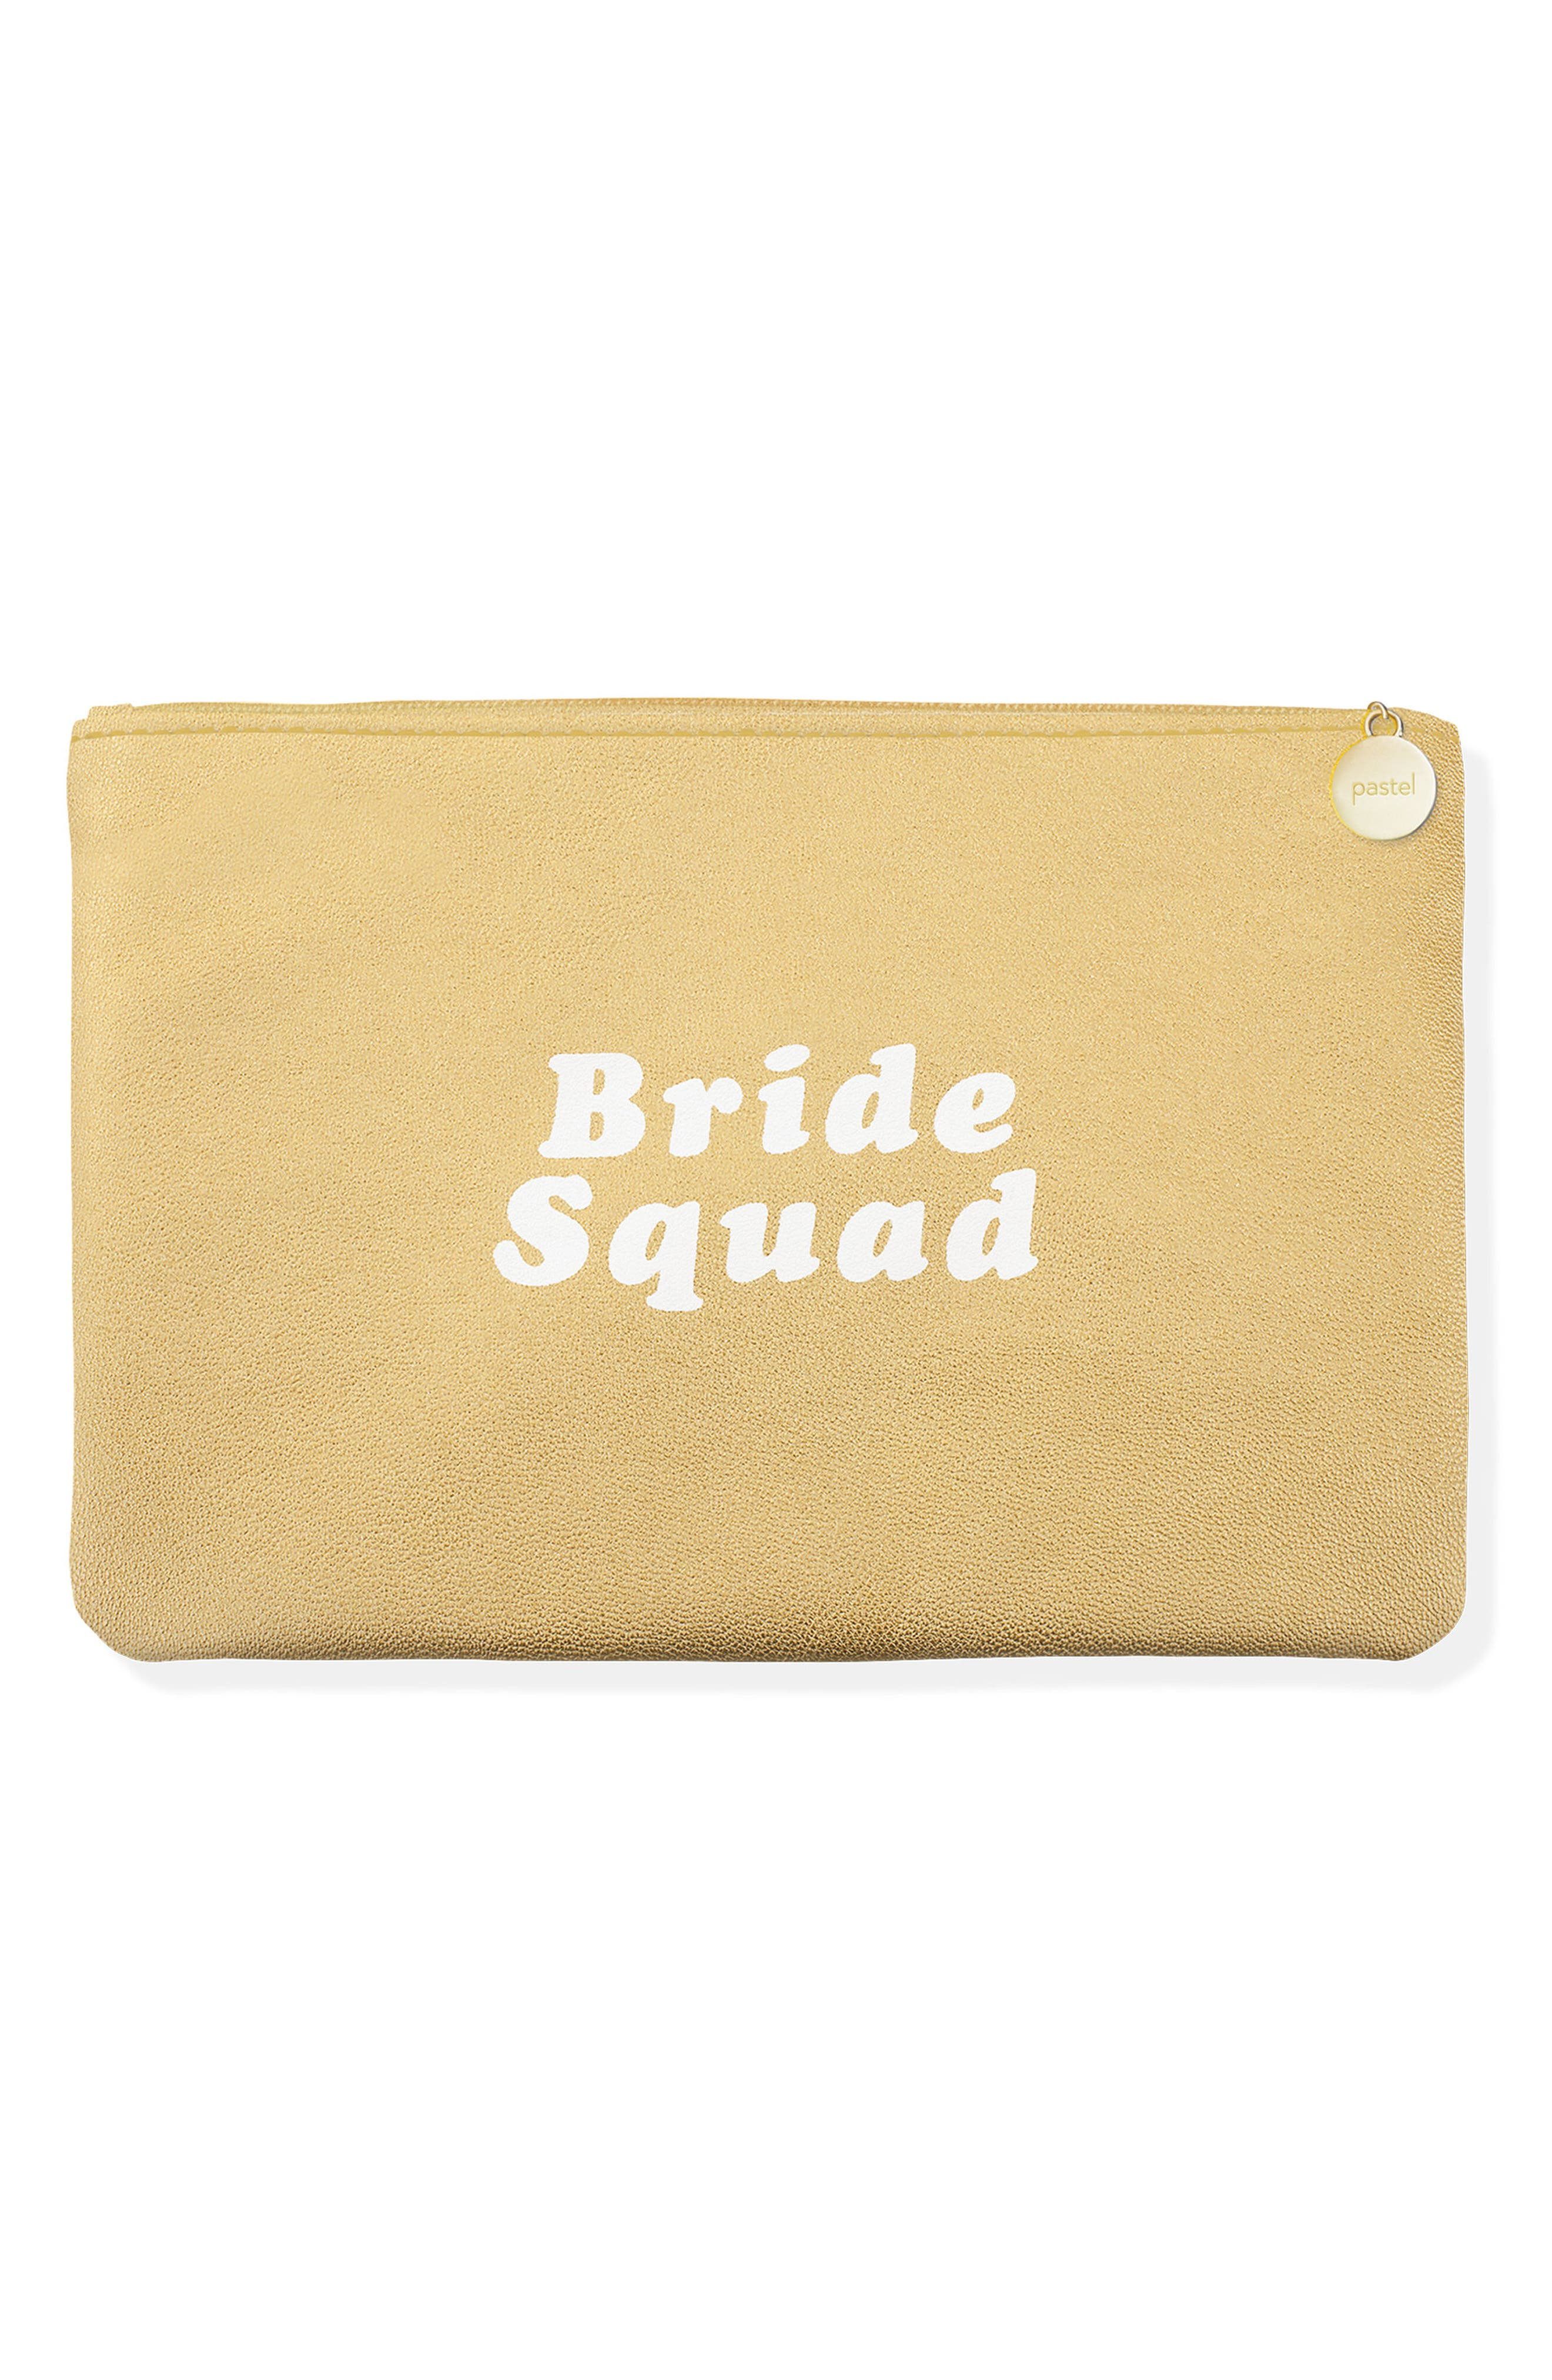 Bride Squad Zip Pouch,                             Main thumbnail 1, color,